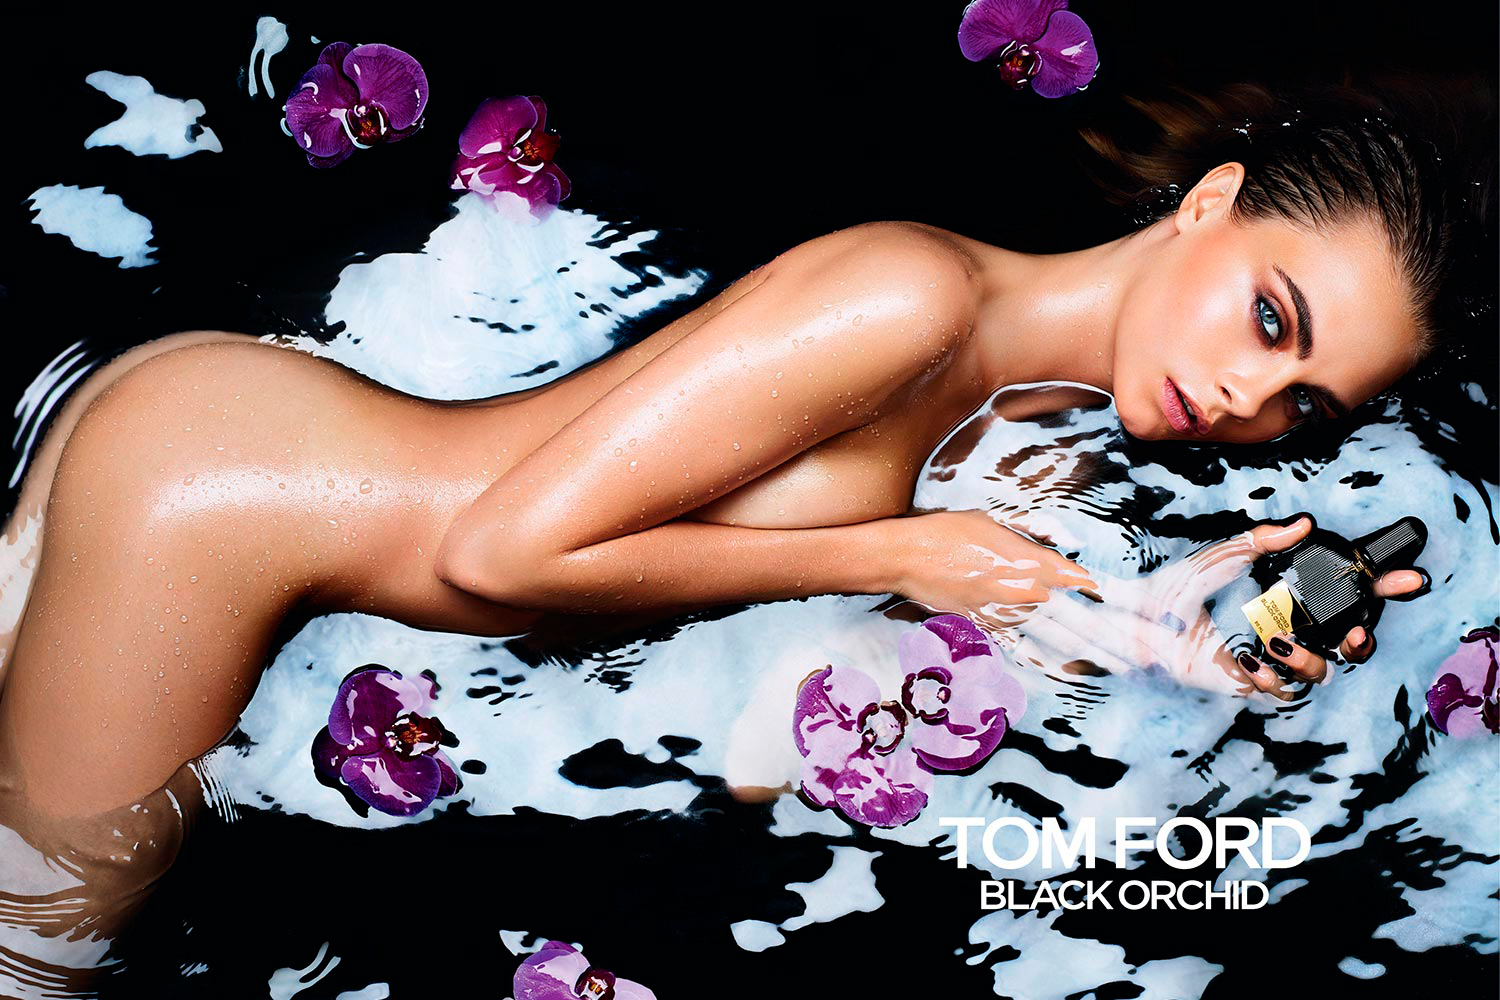 cara-delevigne-tom-ford-fragrance-ad-banned.jpg